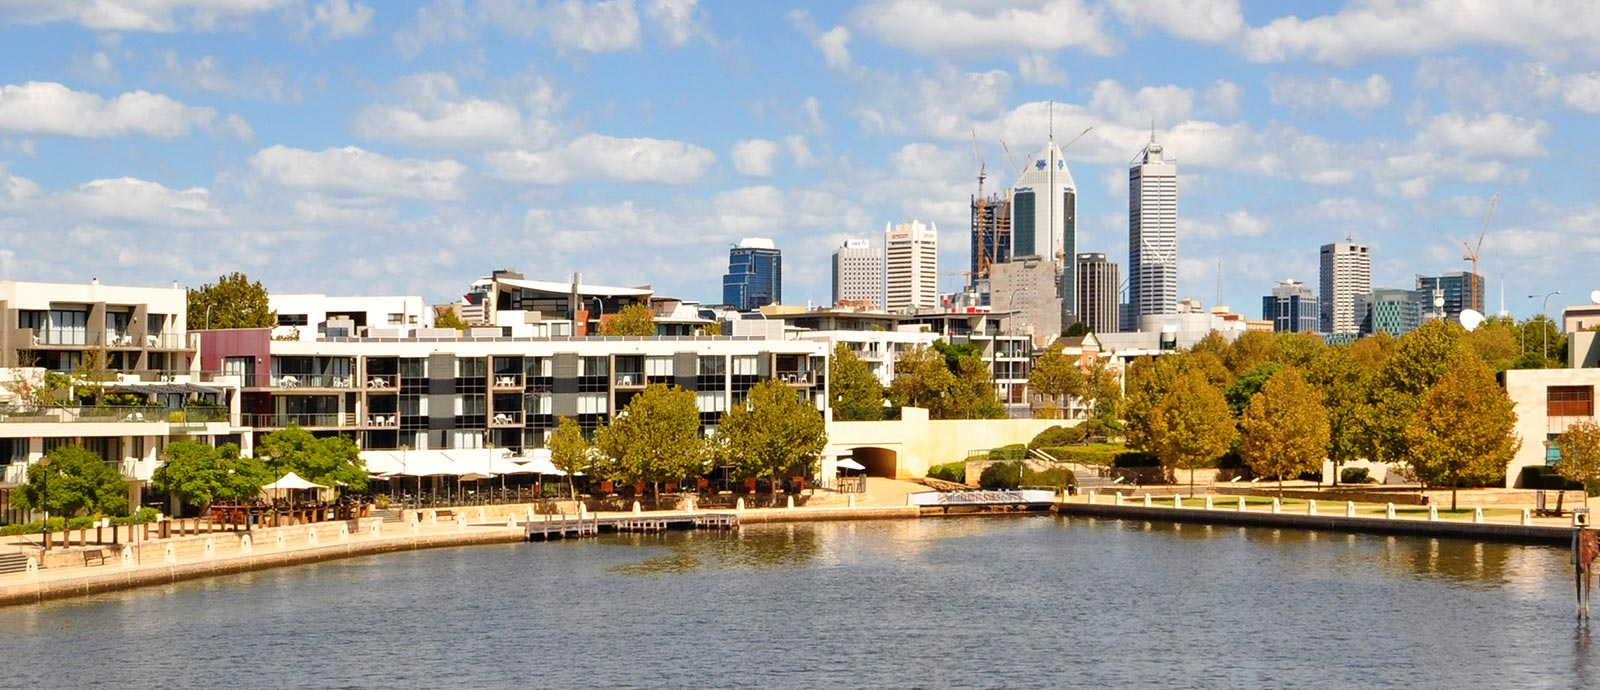 east-perth-with-perth-city.jpg